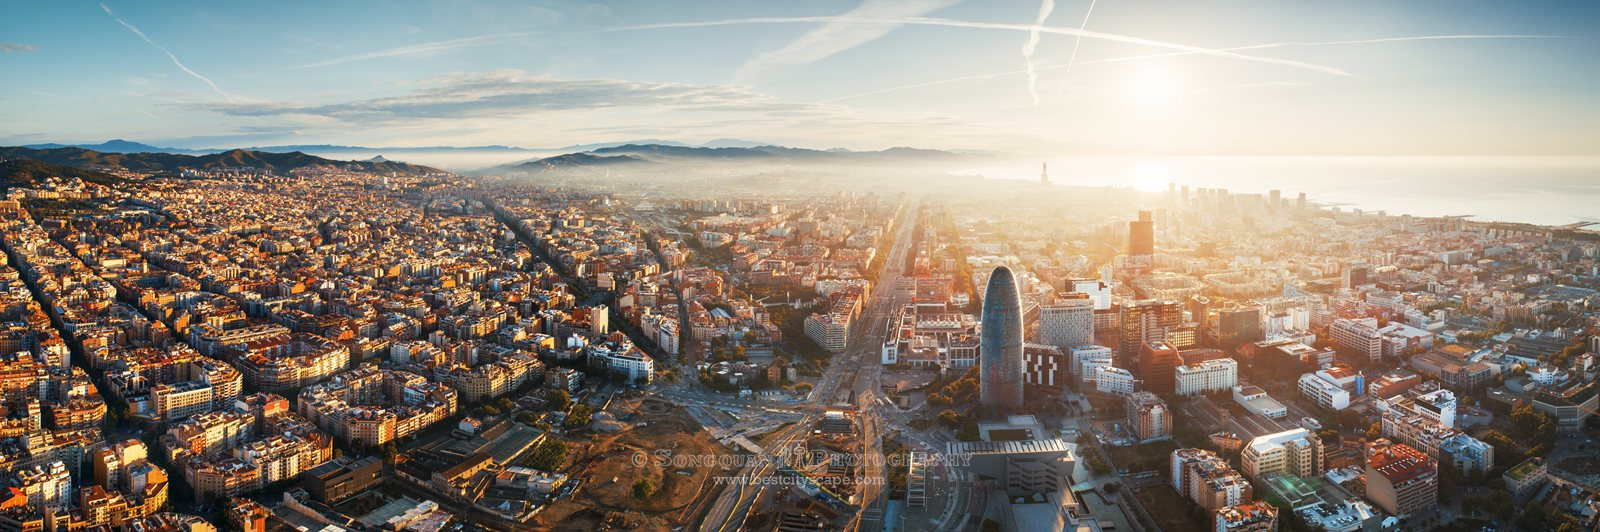 Aerial View Barcelona Spain Songquan Photography